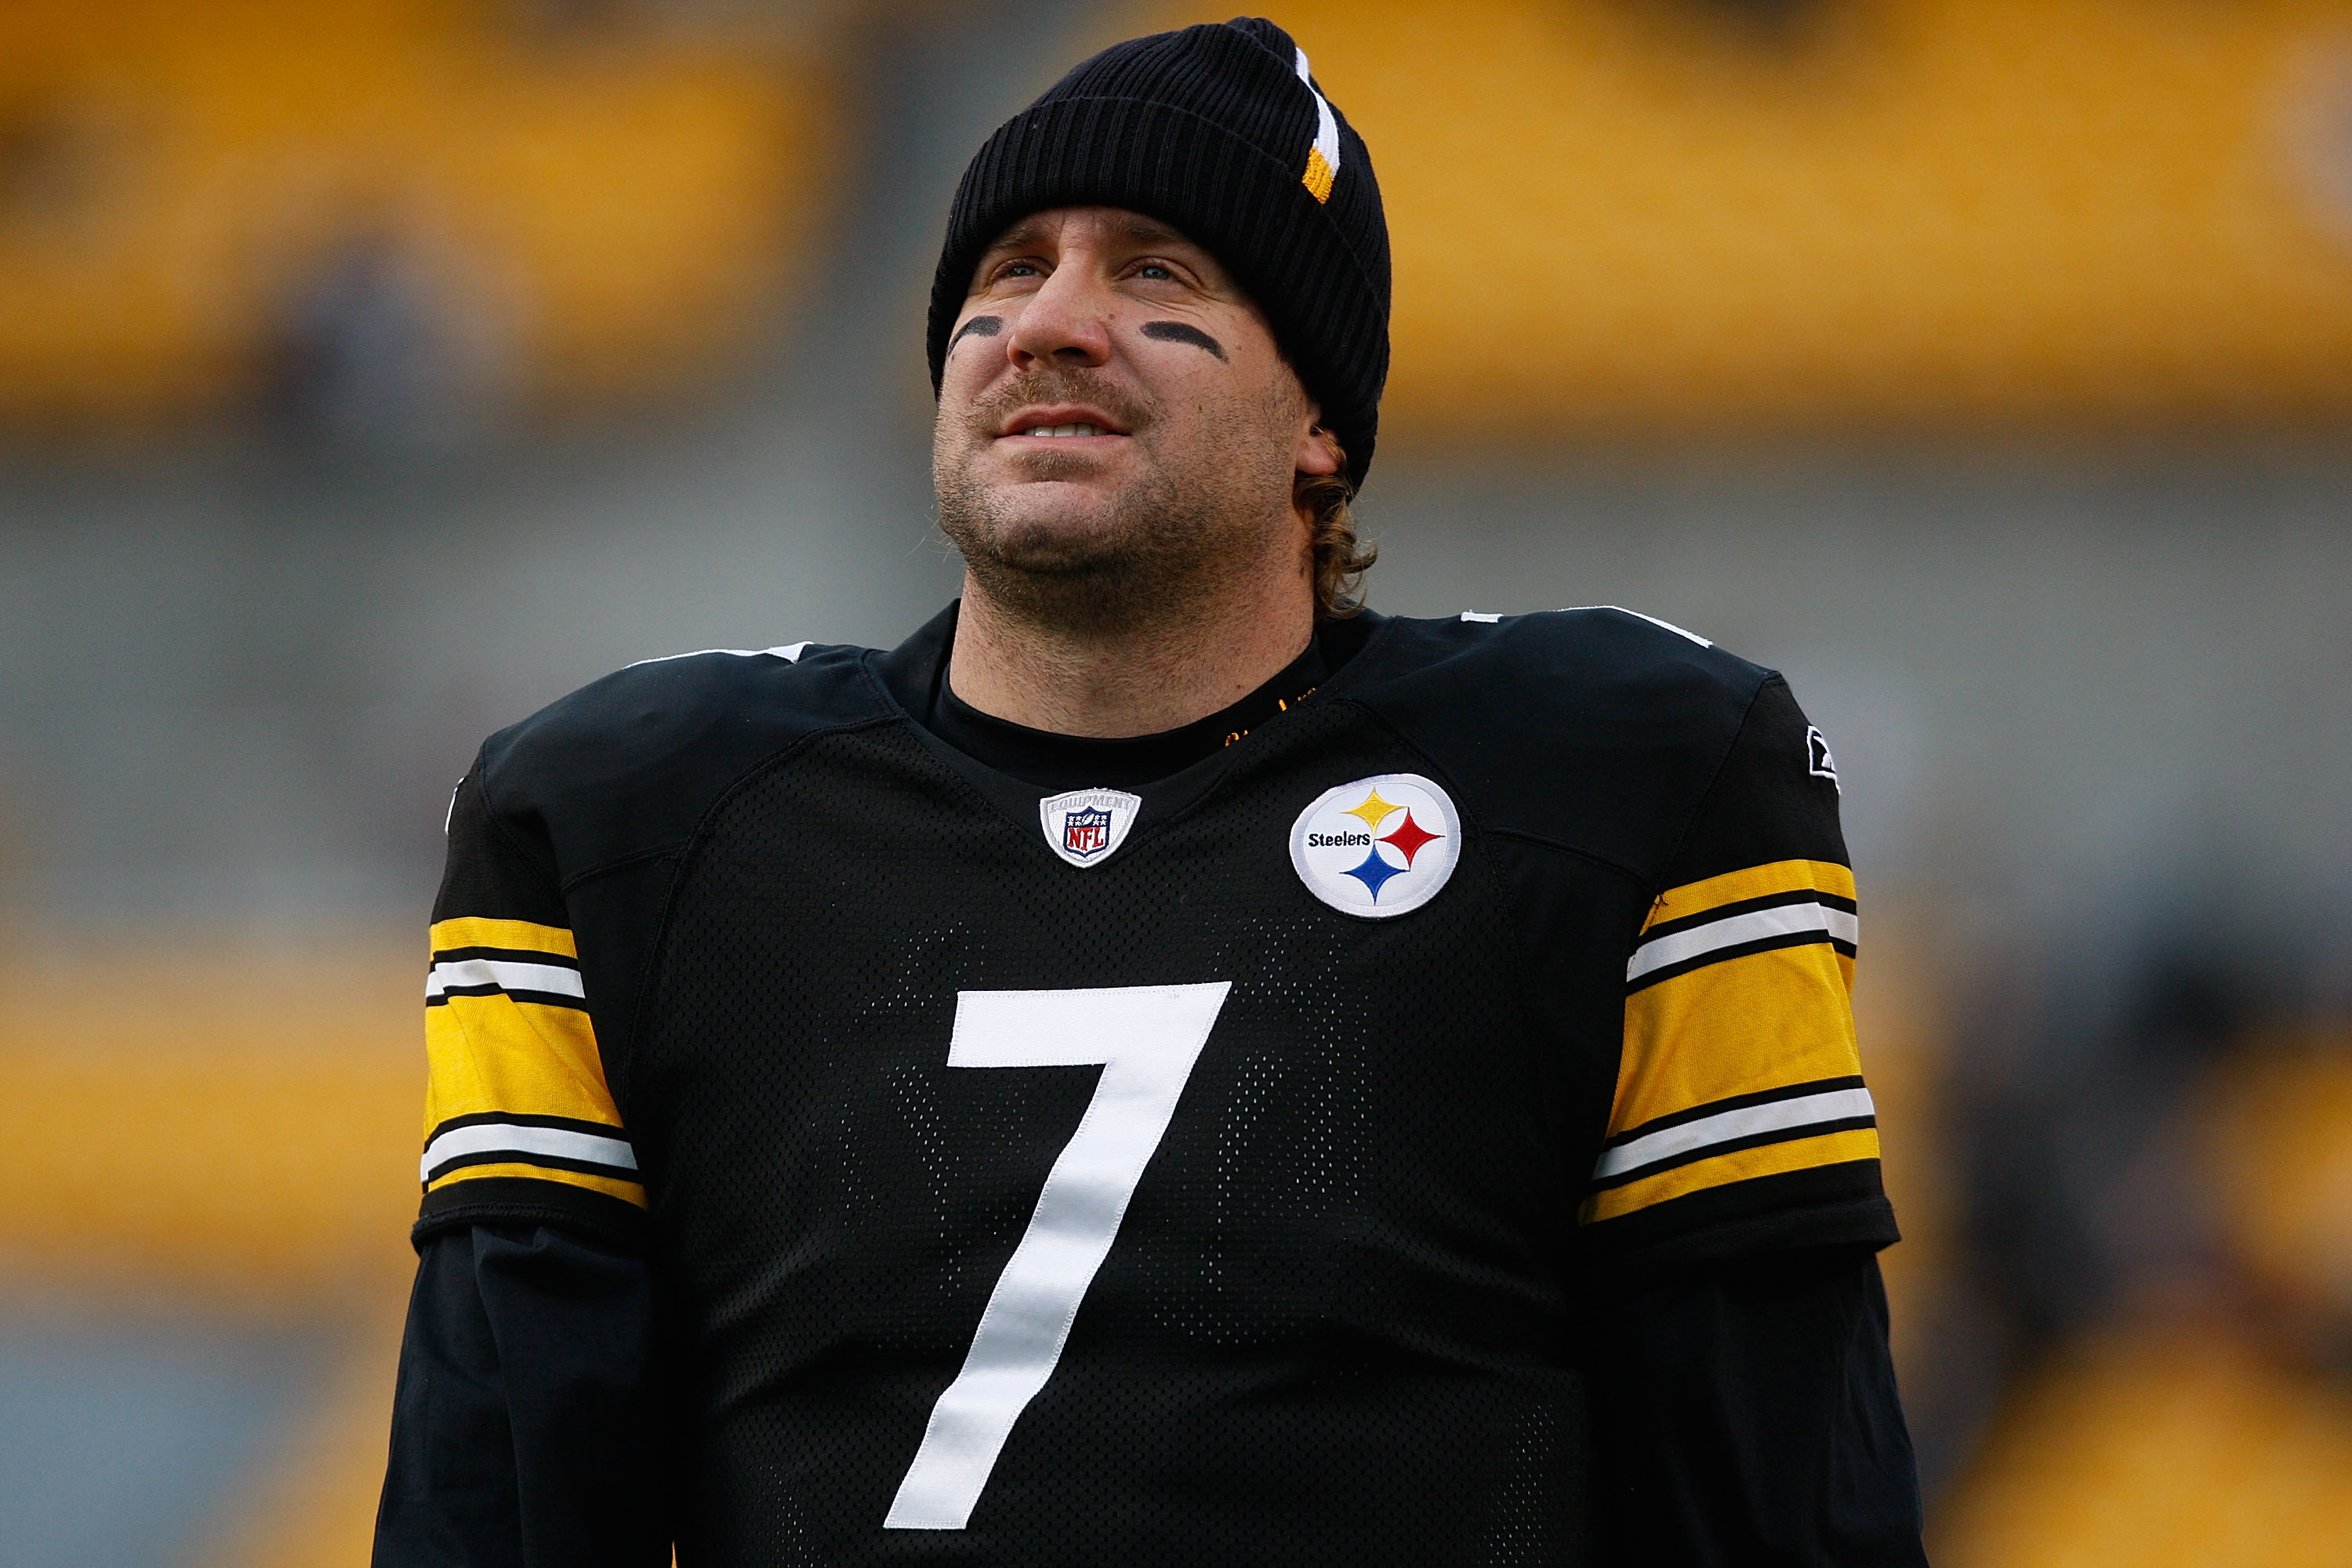 Revisiting Ben Roethlisberger's Sexual Assault Allegations in the #MeToo Era